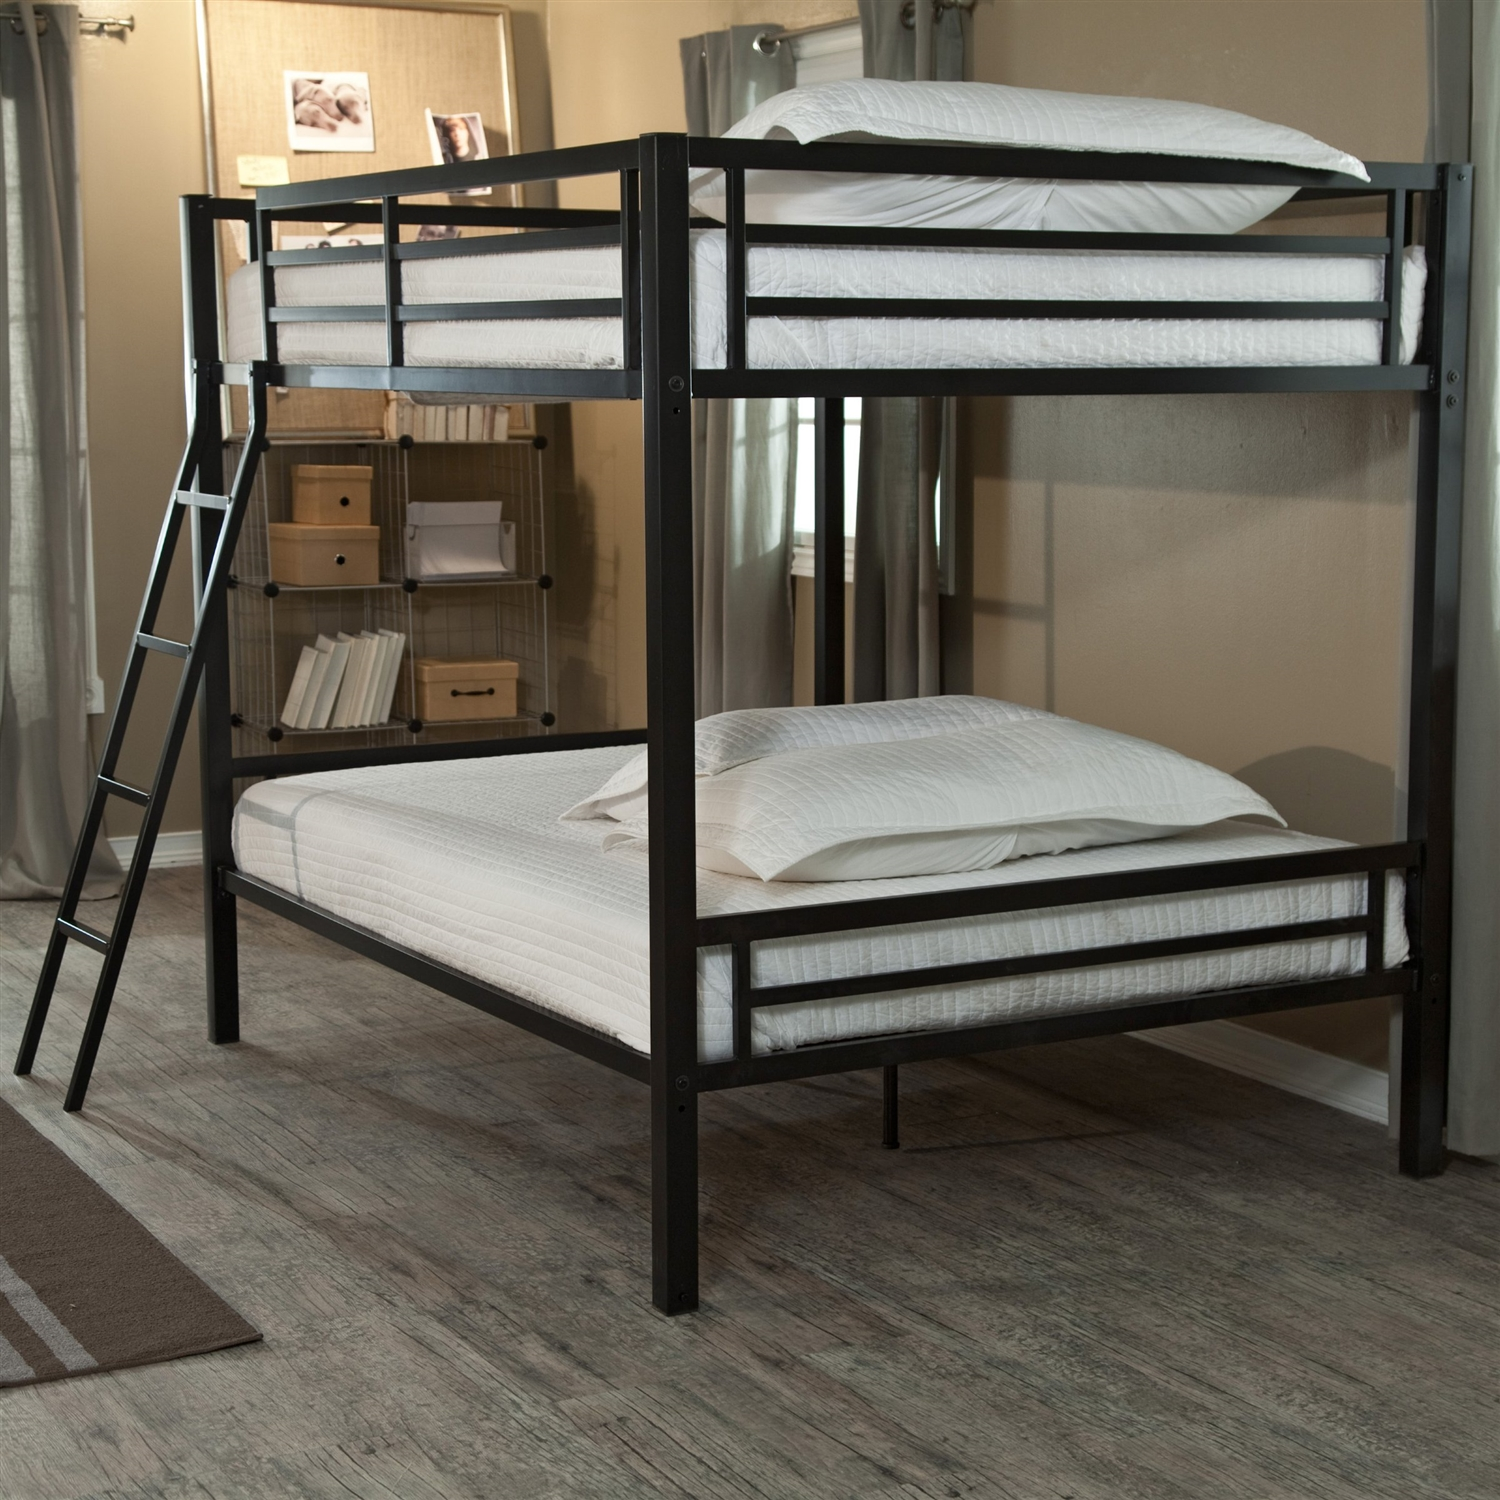 Metal bunk beds full over full - Modern Full Over Full Bunk Bed With Ladder In Black Metal Finish